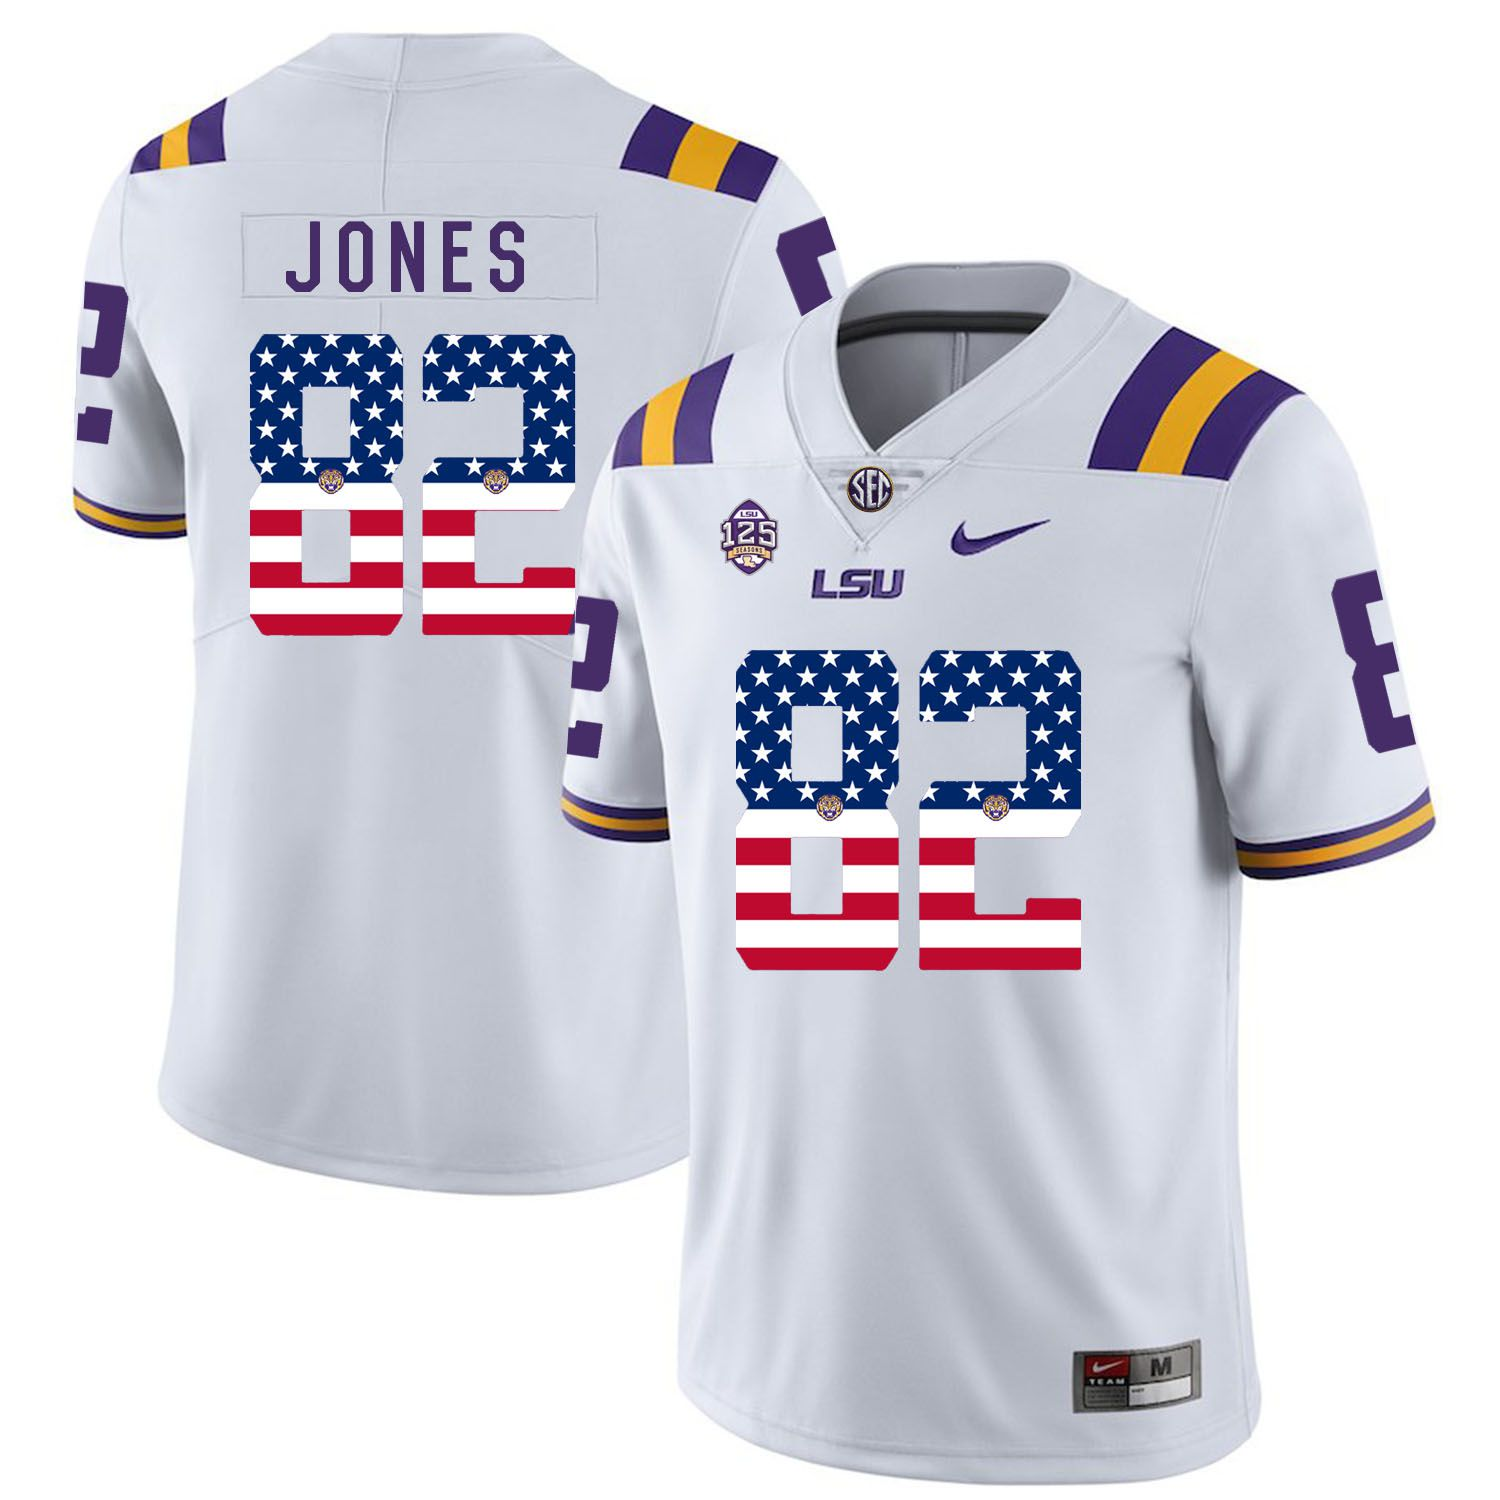 Men LSU Tigers 82 Jones White Flag Customized NCAA Jerseys